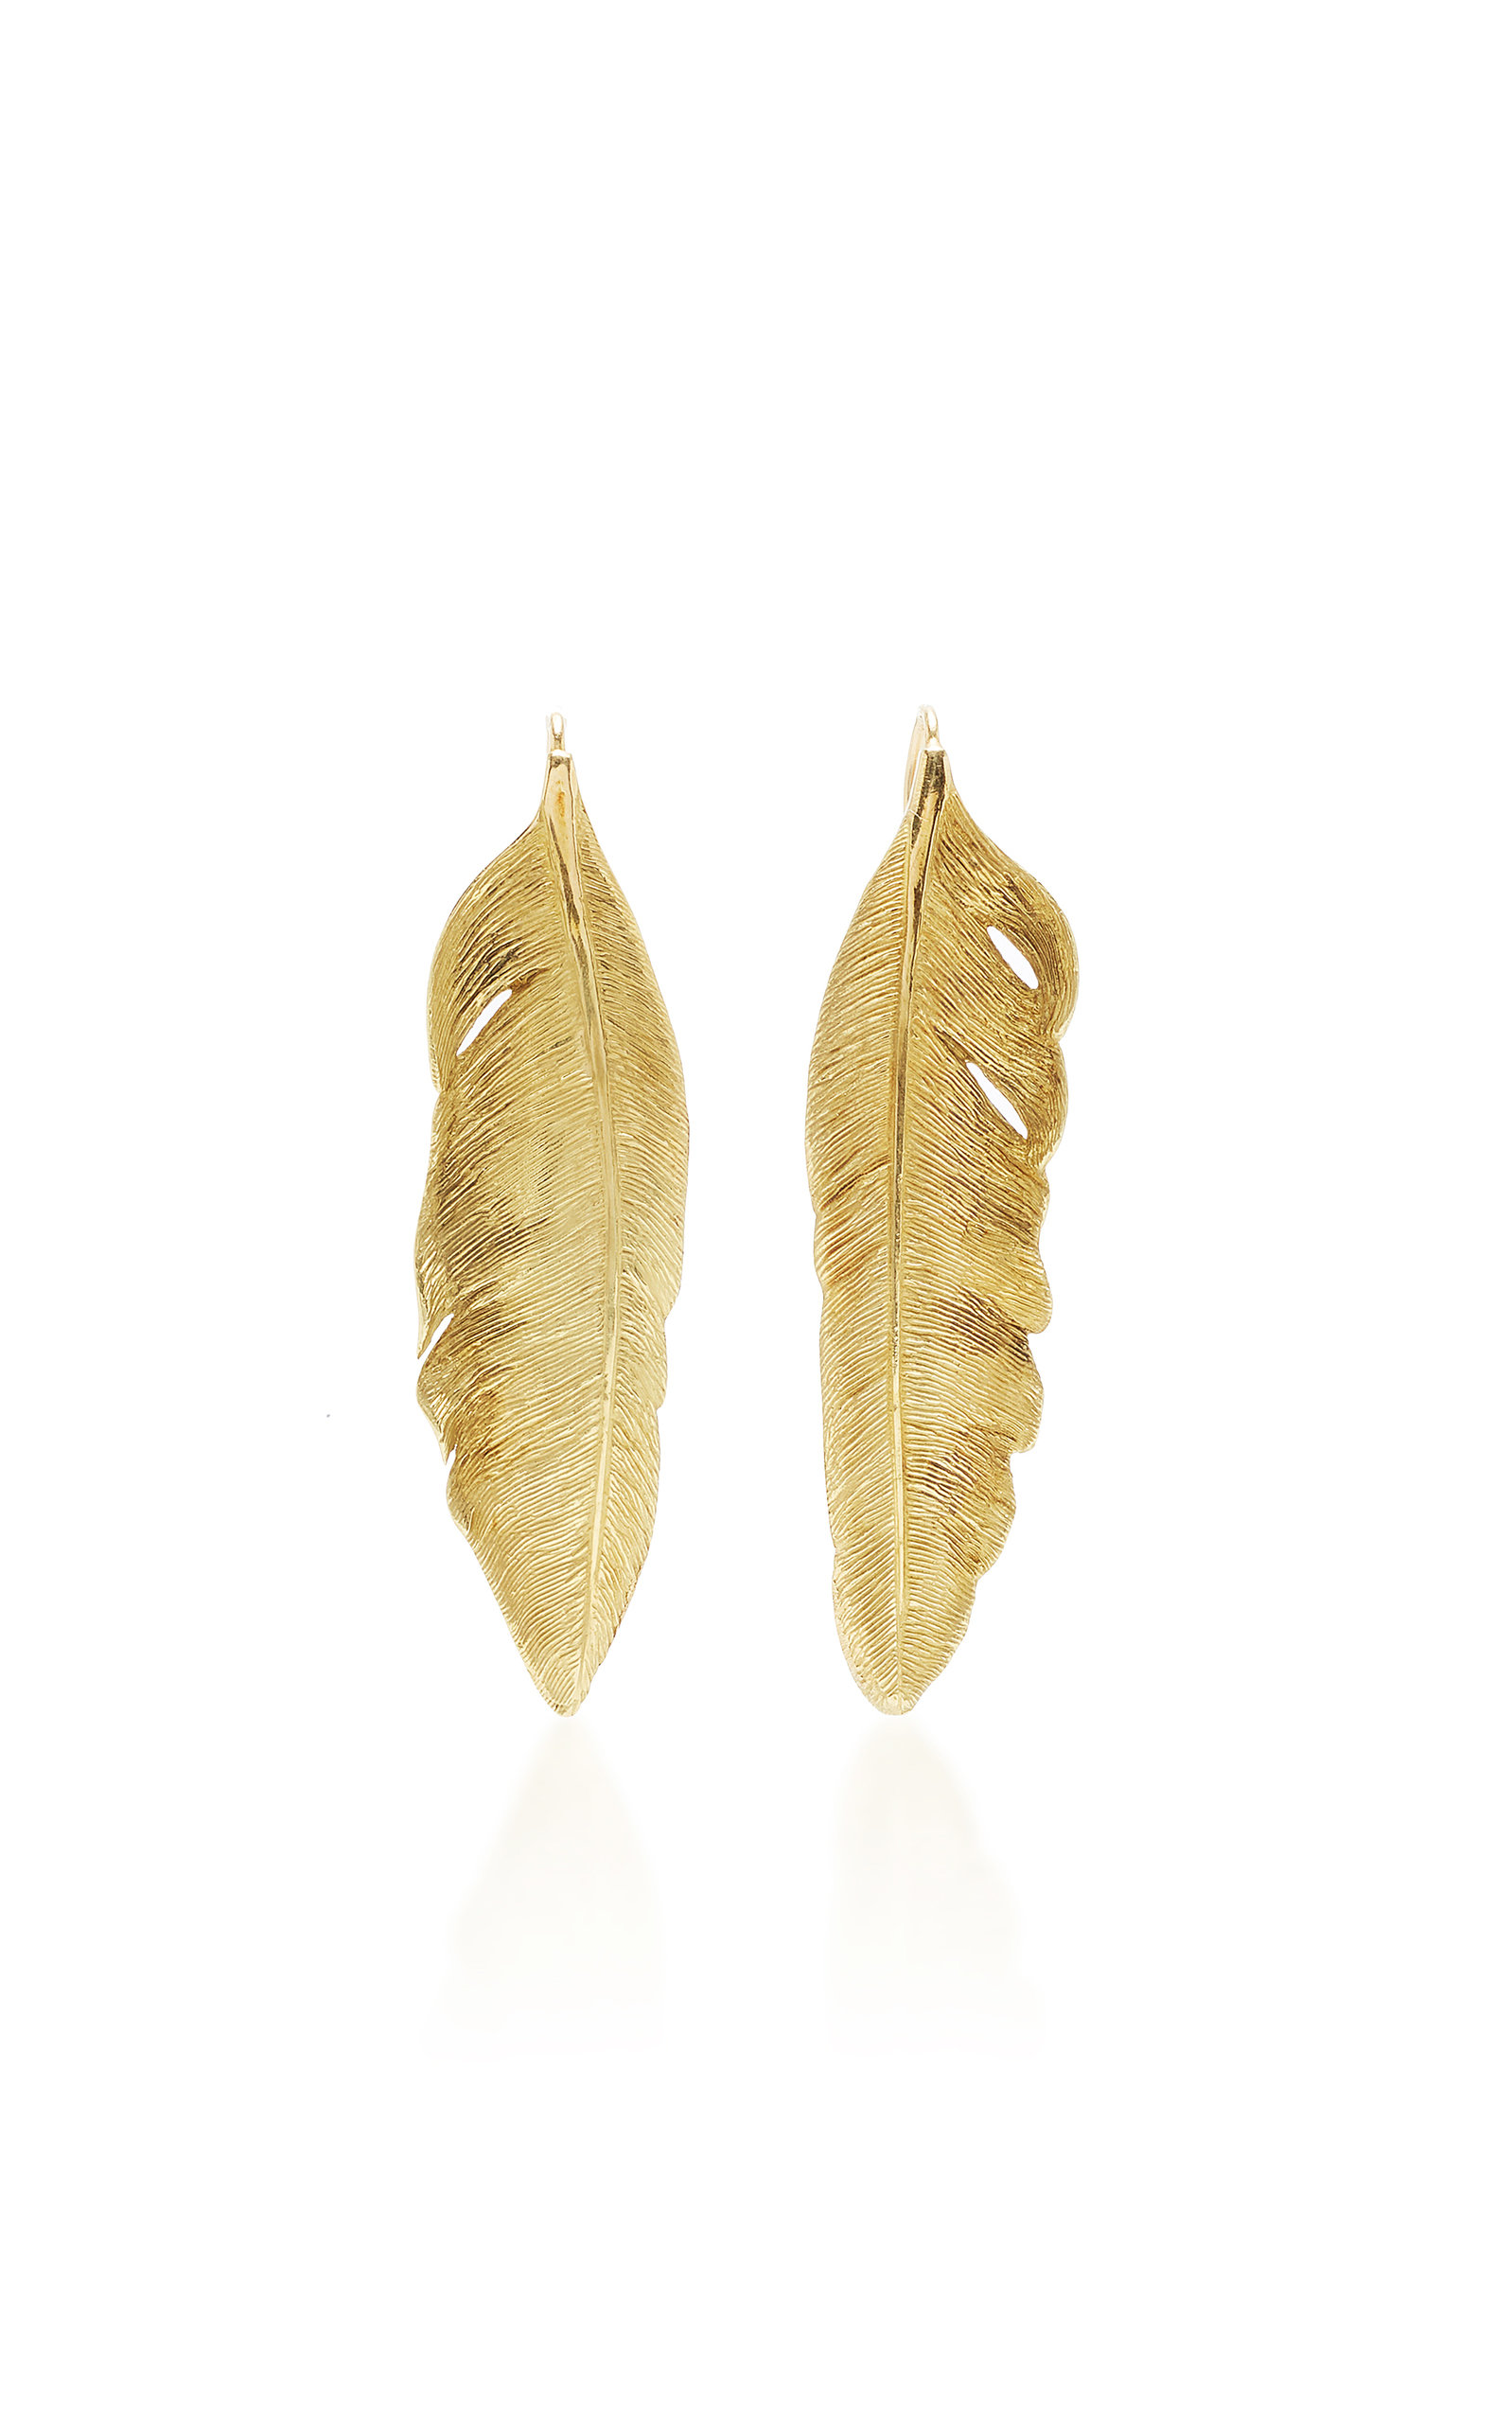 MAHNAZ COLLECTION LIMITED EDITION 18K GOLD FEATHER EARRINGS BY ANGELA CUMMINGS C.1991